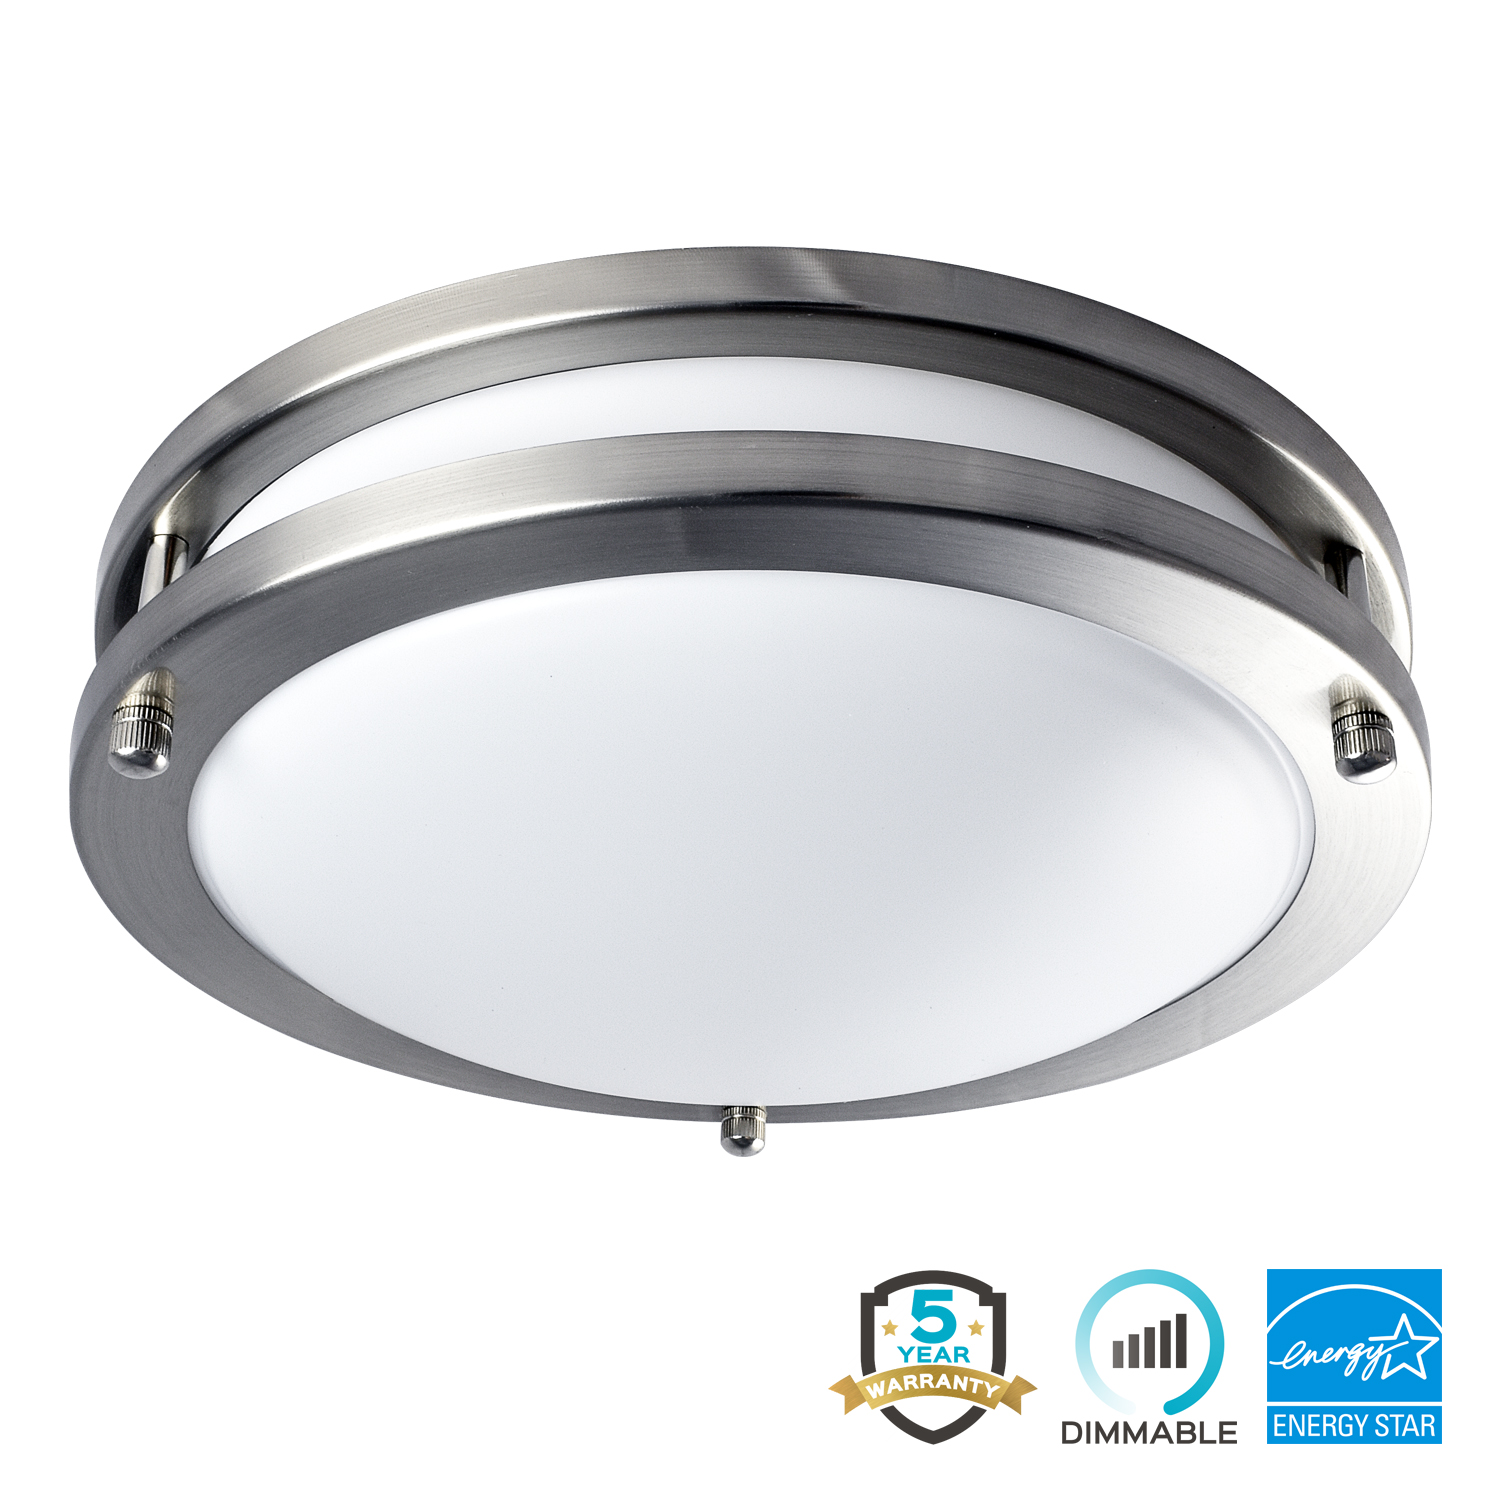 Luxrite LED Flush Mount Ceiling Light, 10 Inch, Dimmable, 3000K Soft White, 1000 Lumens, 14W Ceiling Light Fixture,... by Luxrite